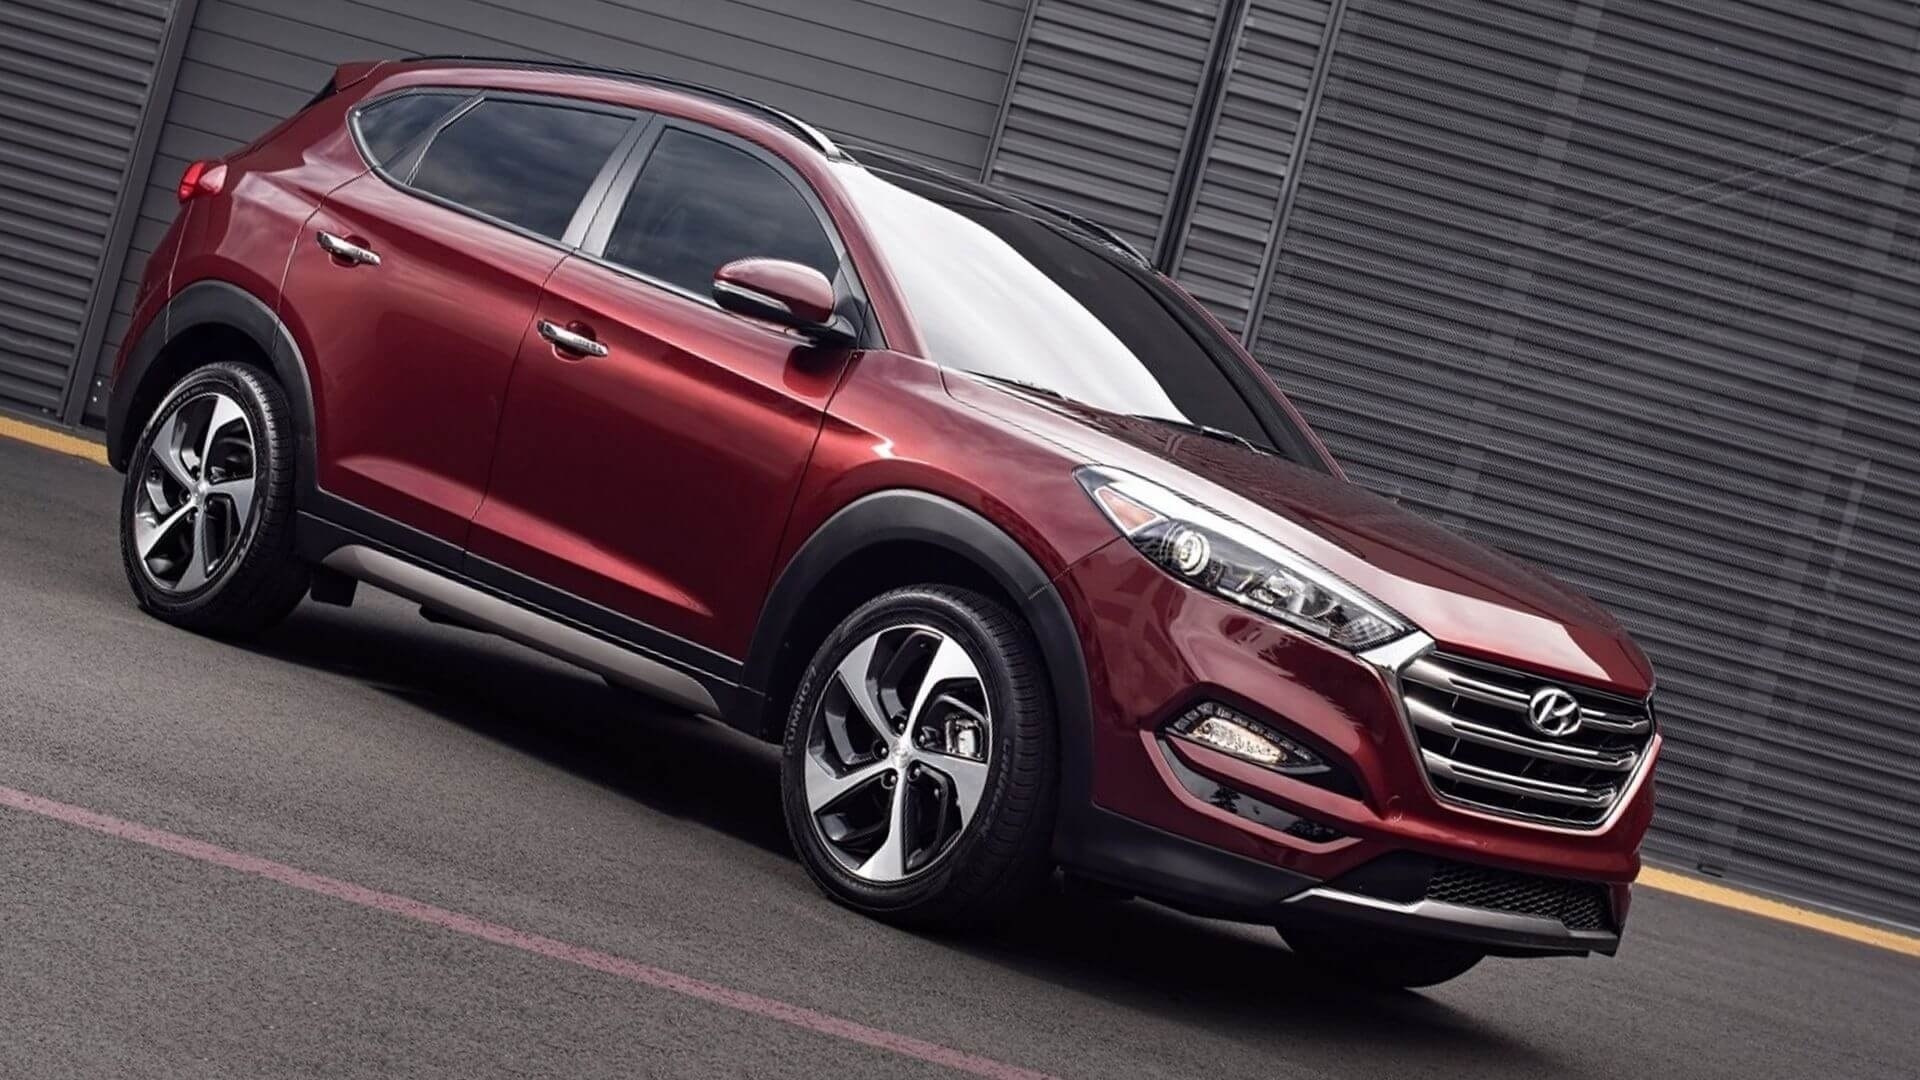 74 The Best 2020 Hyundai Ix35 Configurations